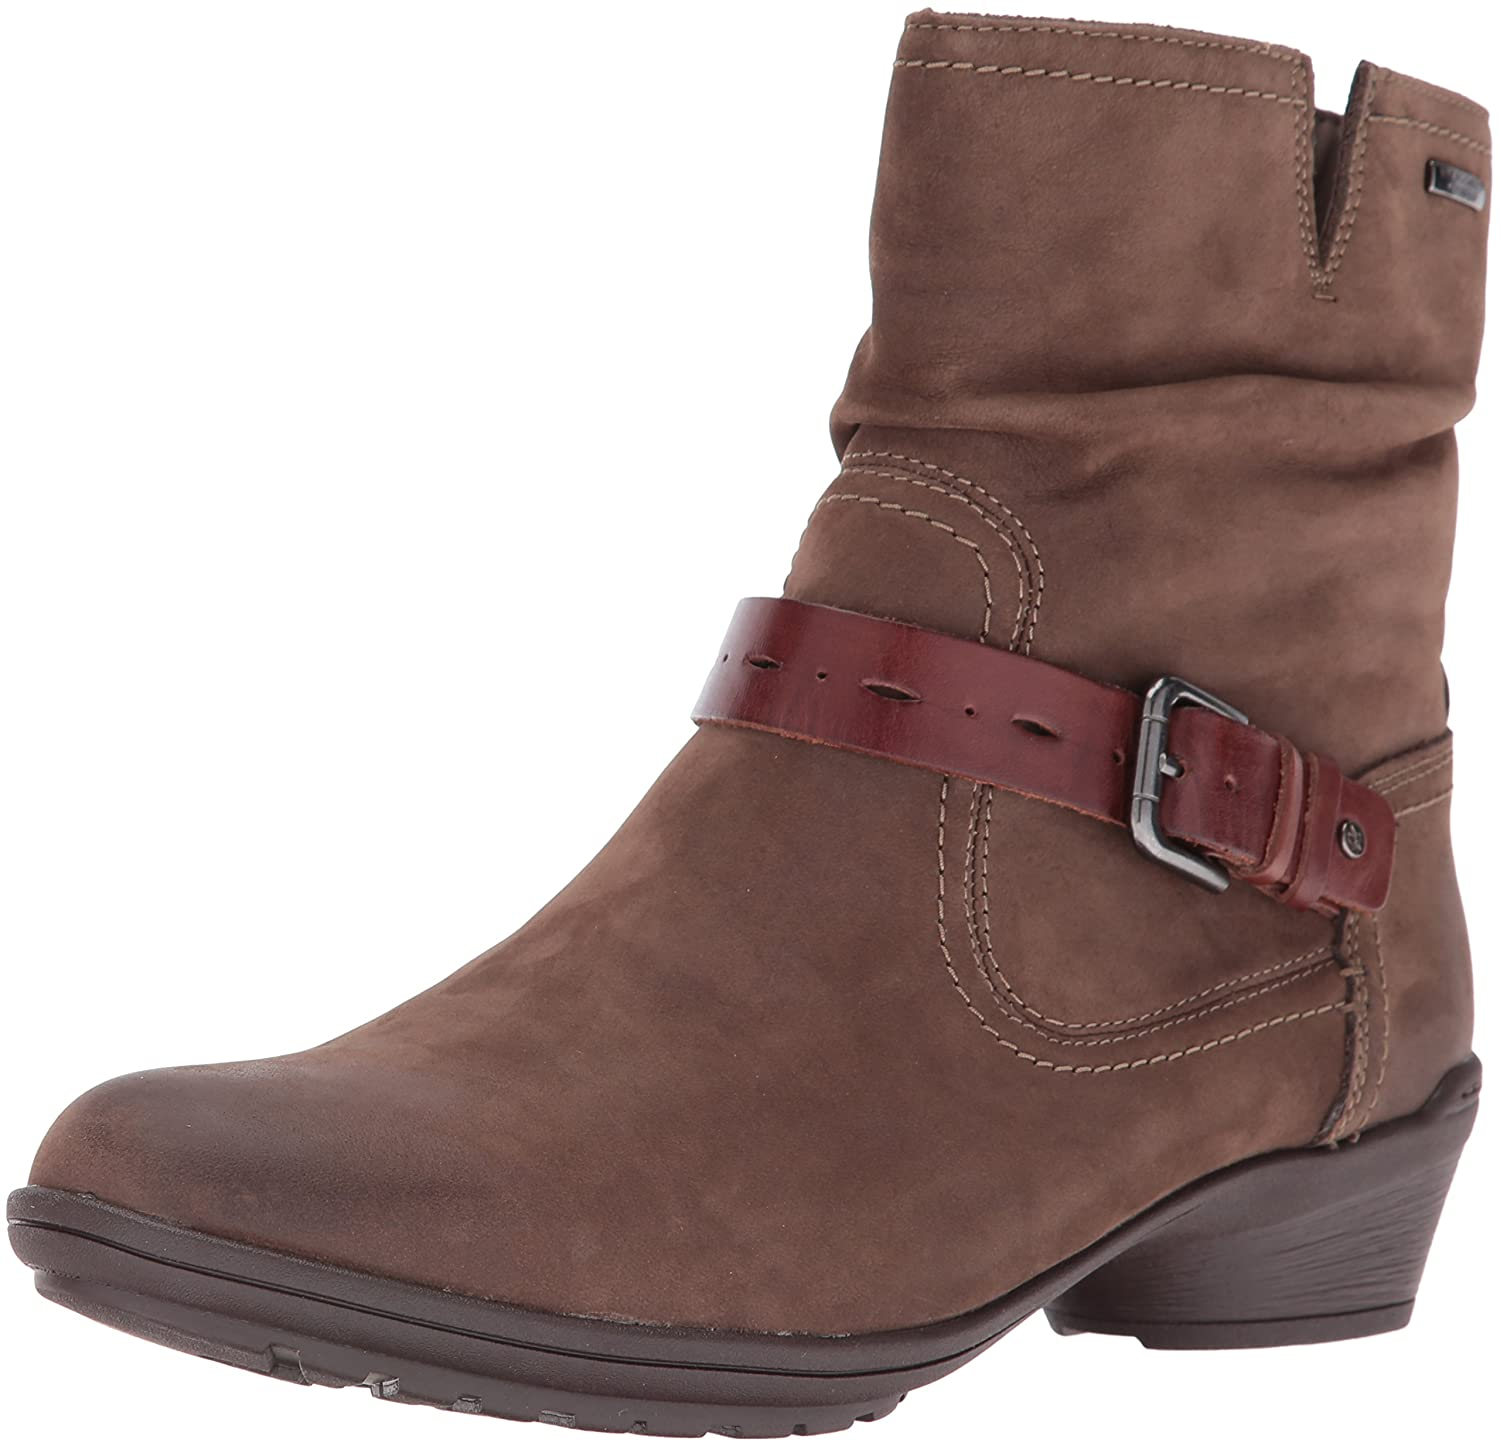 Rockport Women's Cobb Hill Riley Waterproof Boot B01AKA718I 8 W US|Stone